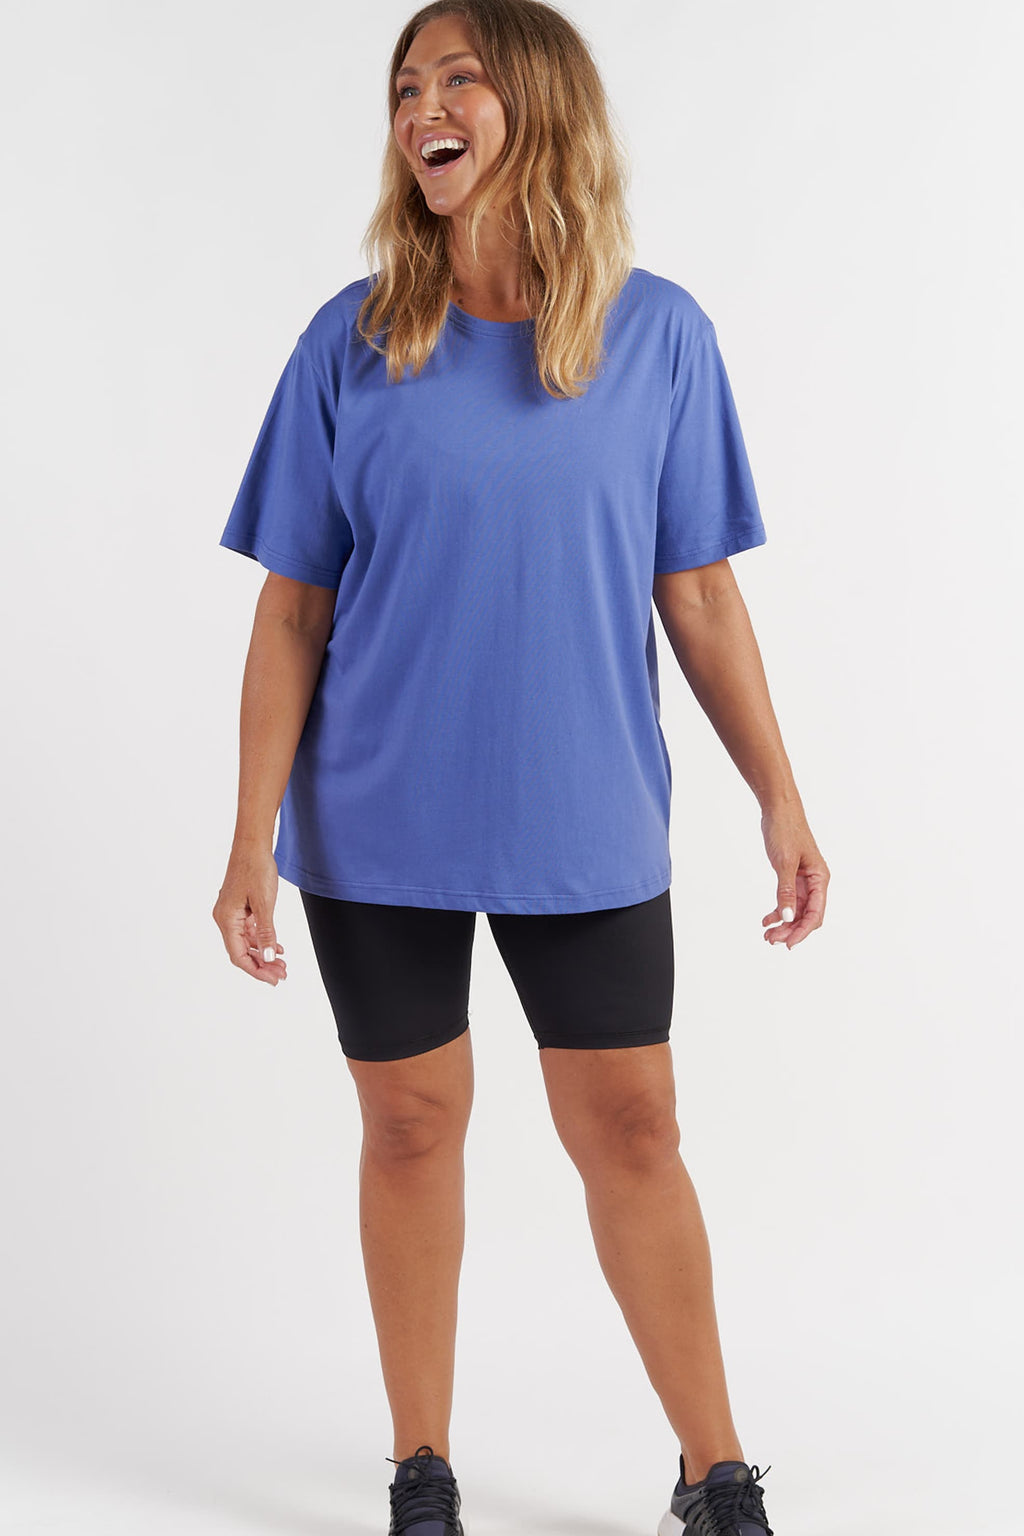 Oversized T-Shirt - Bright Blue from Active Truth USA